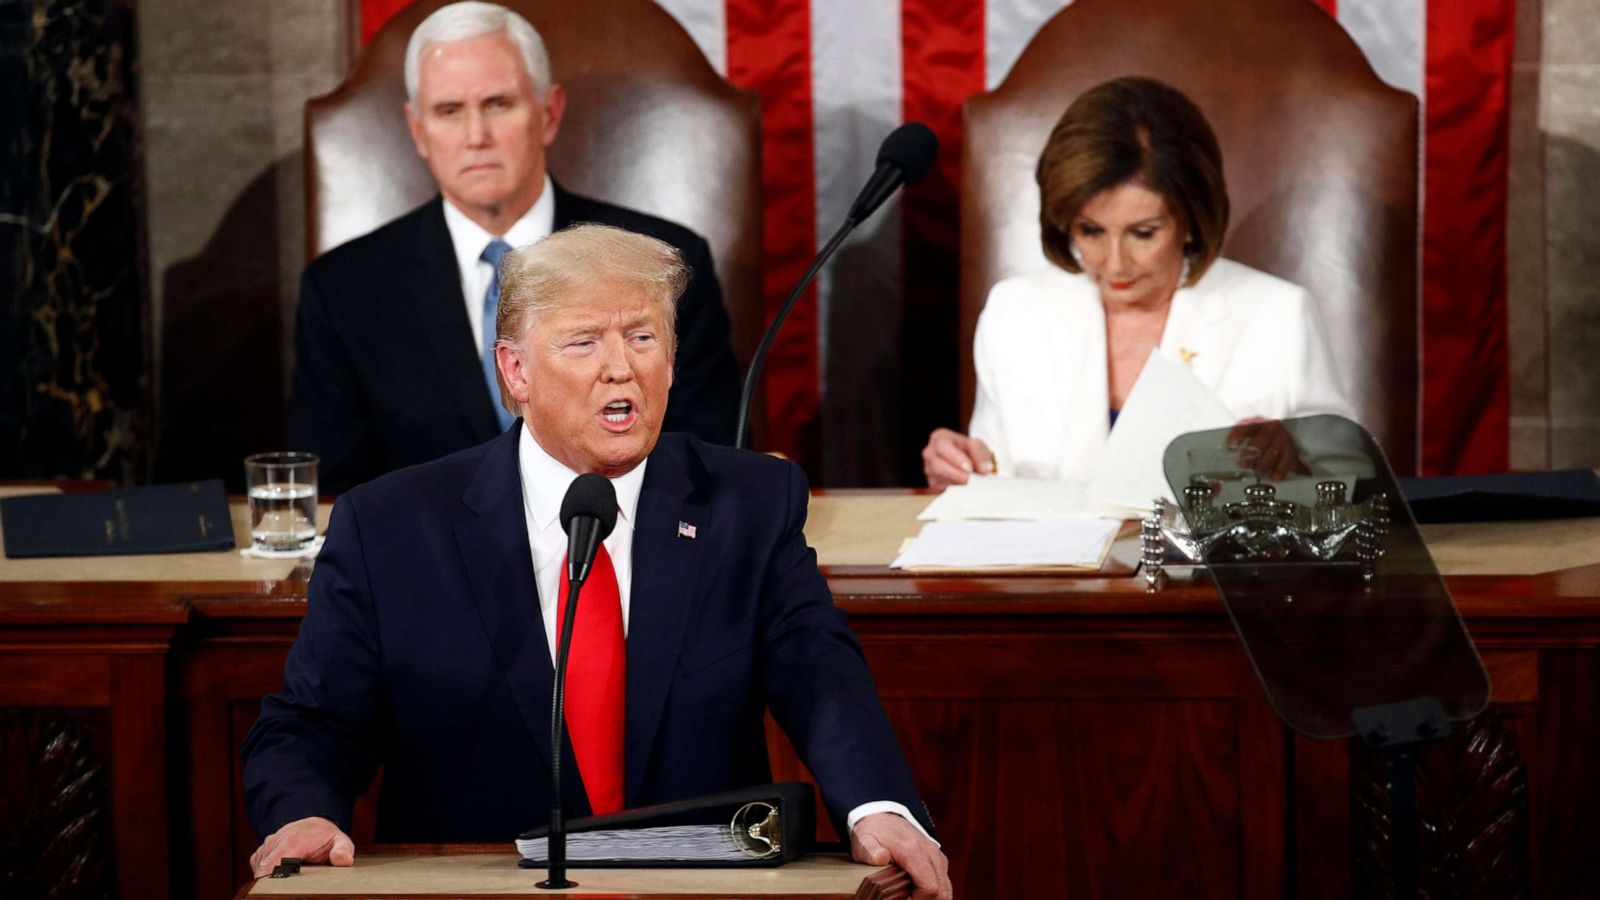 Trump Delivers Triumphant State Of The Union On Eve Of Expected Images, Photos, Reviews